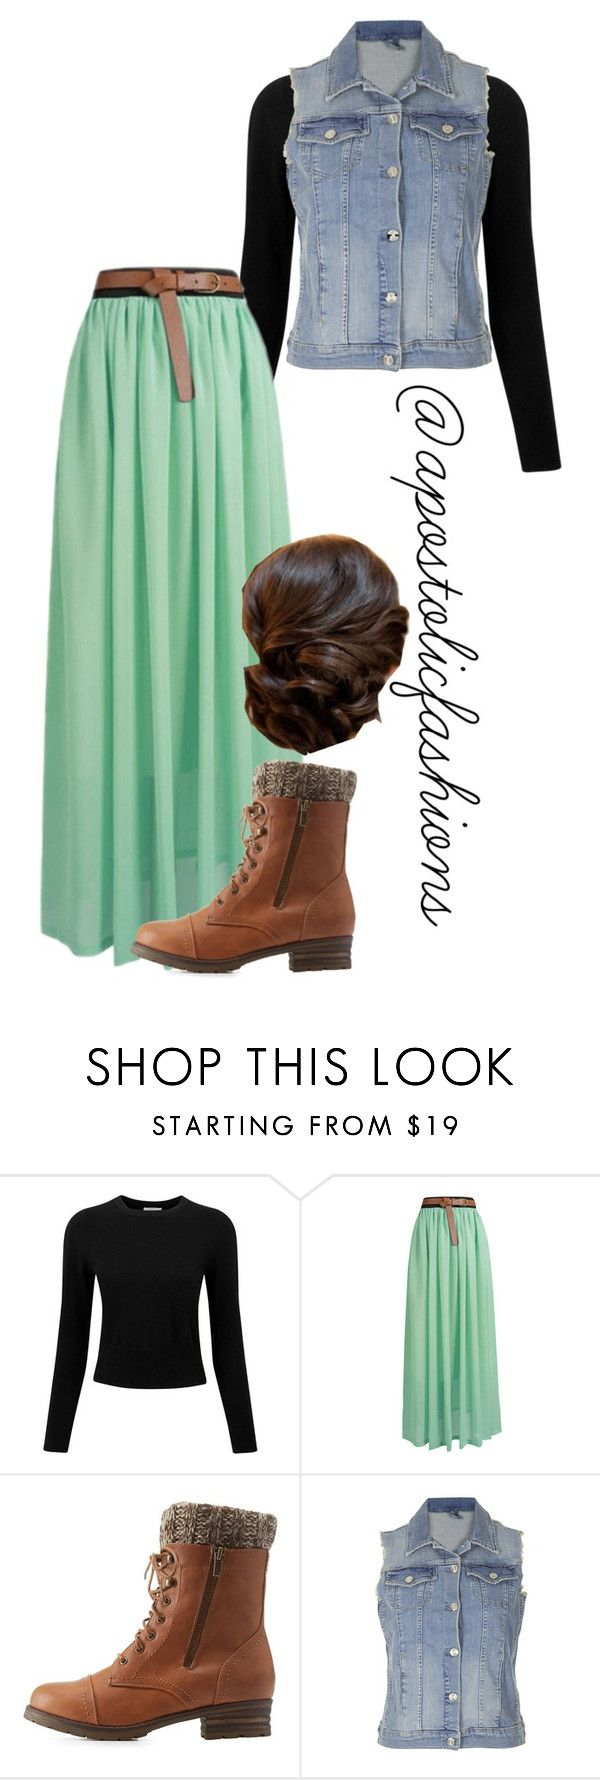 """Apostolic Fashions #1108"" by apostolicfashions on Polyvore featuring Pure Collection, Charlotte Russe and Topshop"